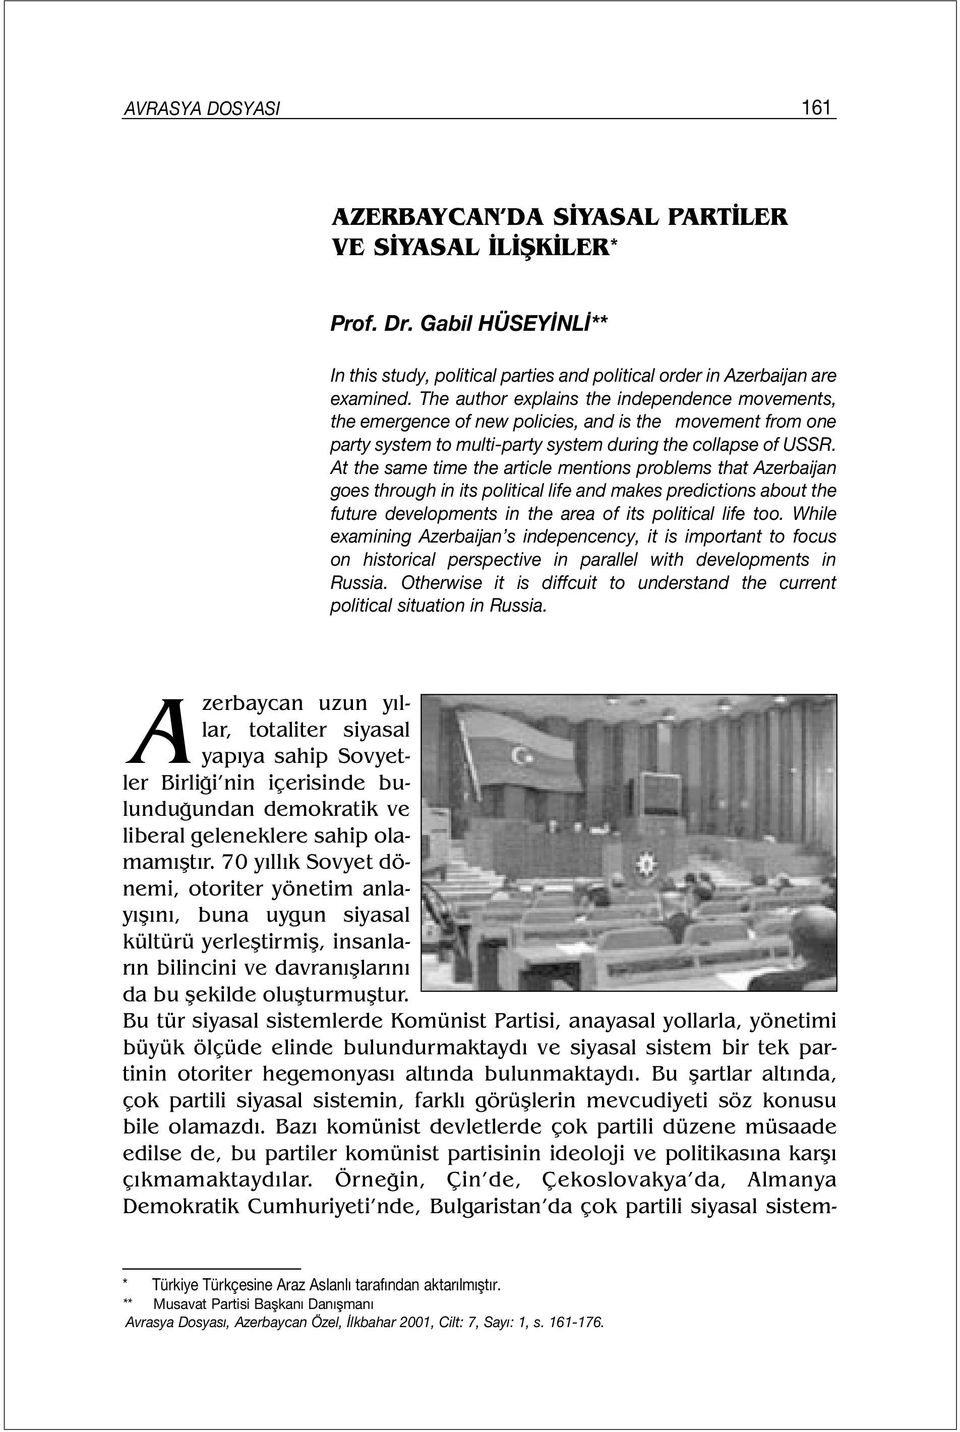 At the same time the article mentions problems that Azerbaijan goes through in its political life and makes predictions about the future developments in the area of its political life too.